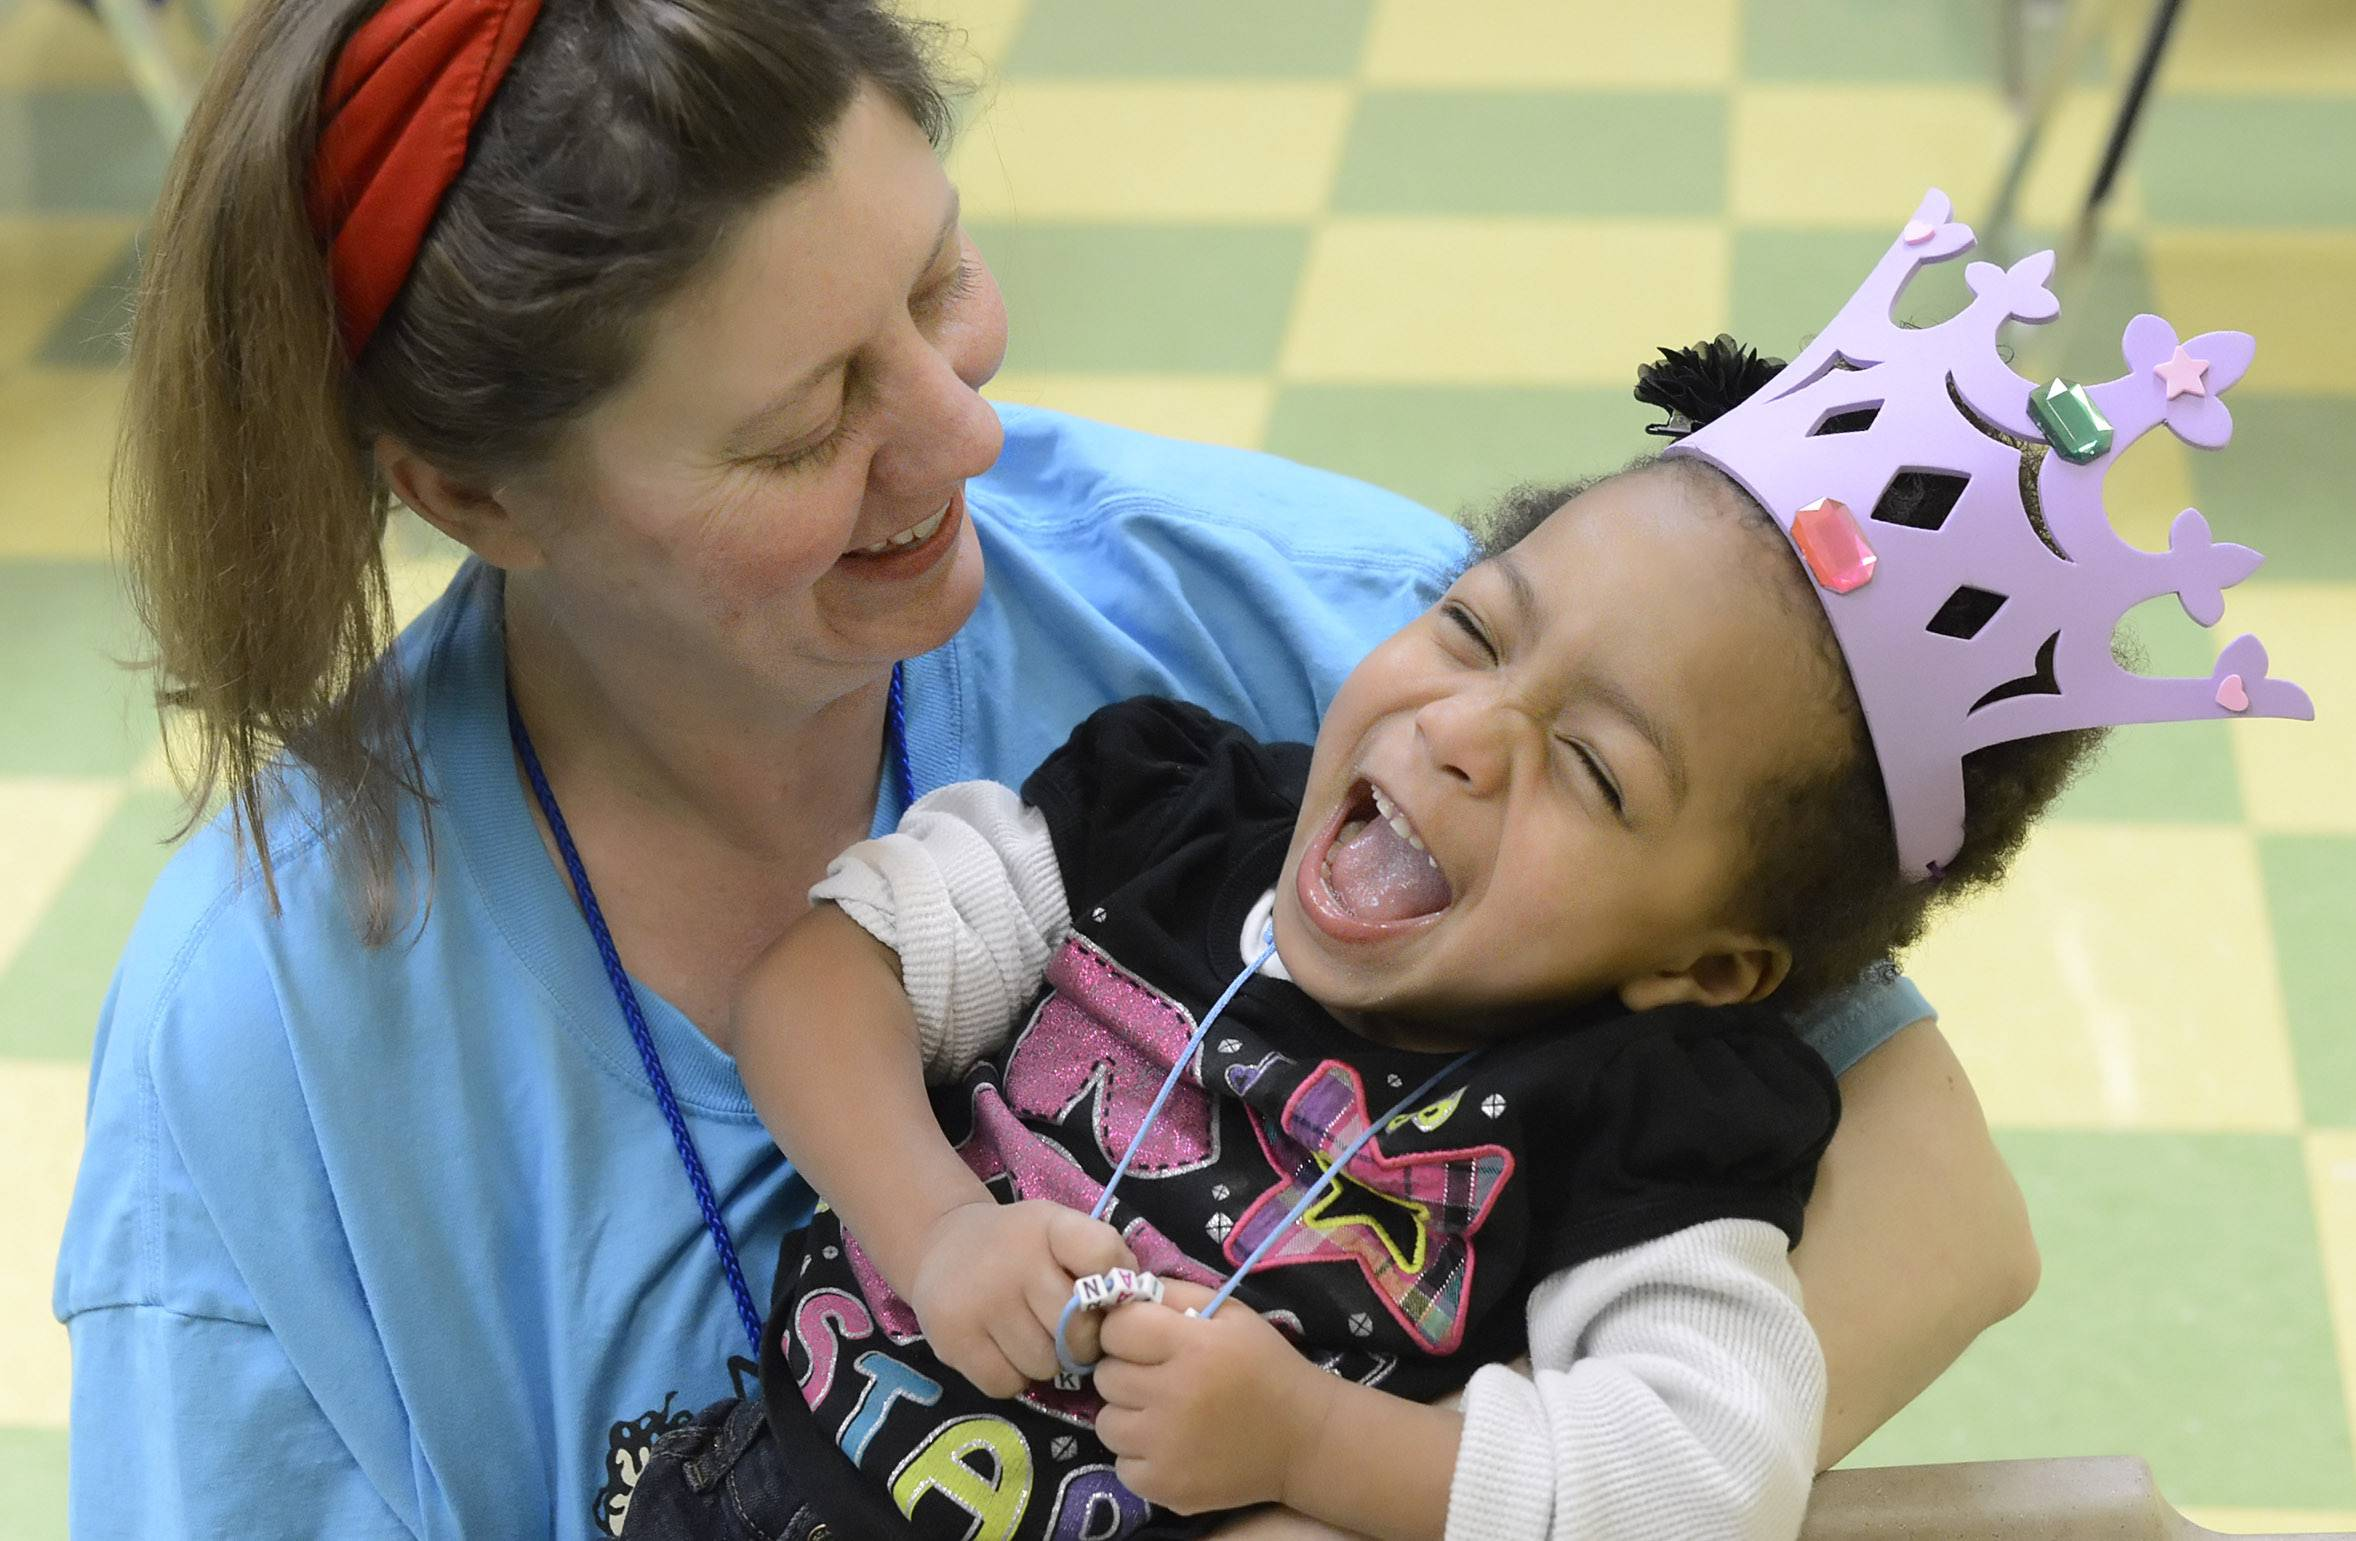 Theresa Hughes of Elburn makes Kei'anna Bateman of Kaneville laugh Saturday during a Nathaniel's Hope Buddy Break program at First Baptist Church in Geneva. Hughes and Rachel Christopherson, 13, of Aurora team up and work with Kei'anna during the program designed to provide a brief break for the families of children with special needs.